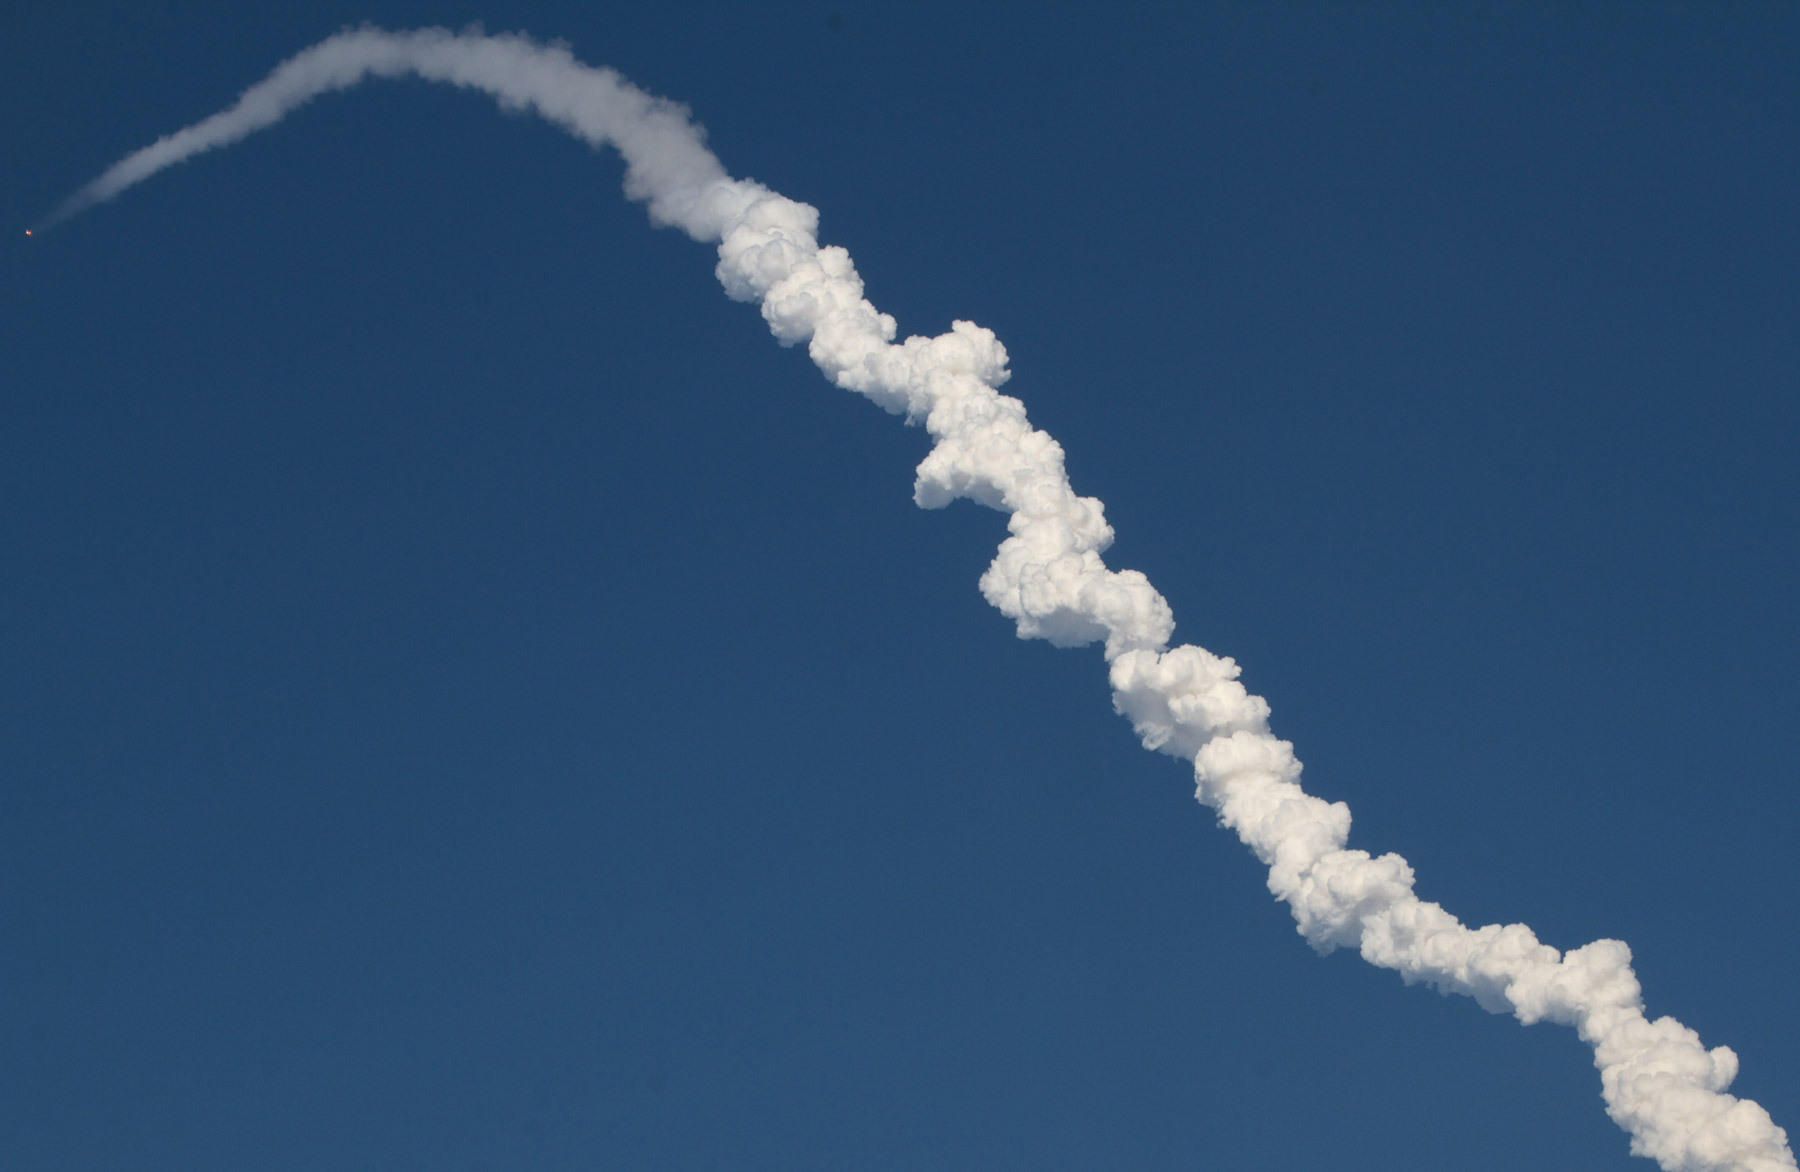 Note: That little orange dot at the top of the rocket's plume is the space capsule containing two astronauts